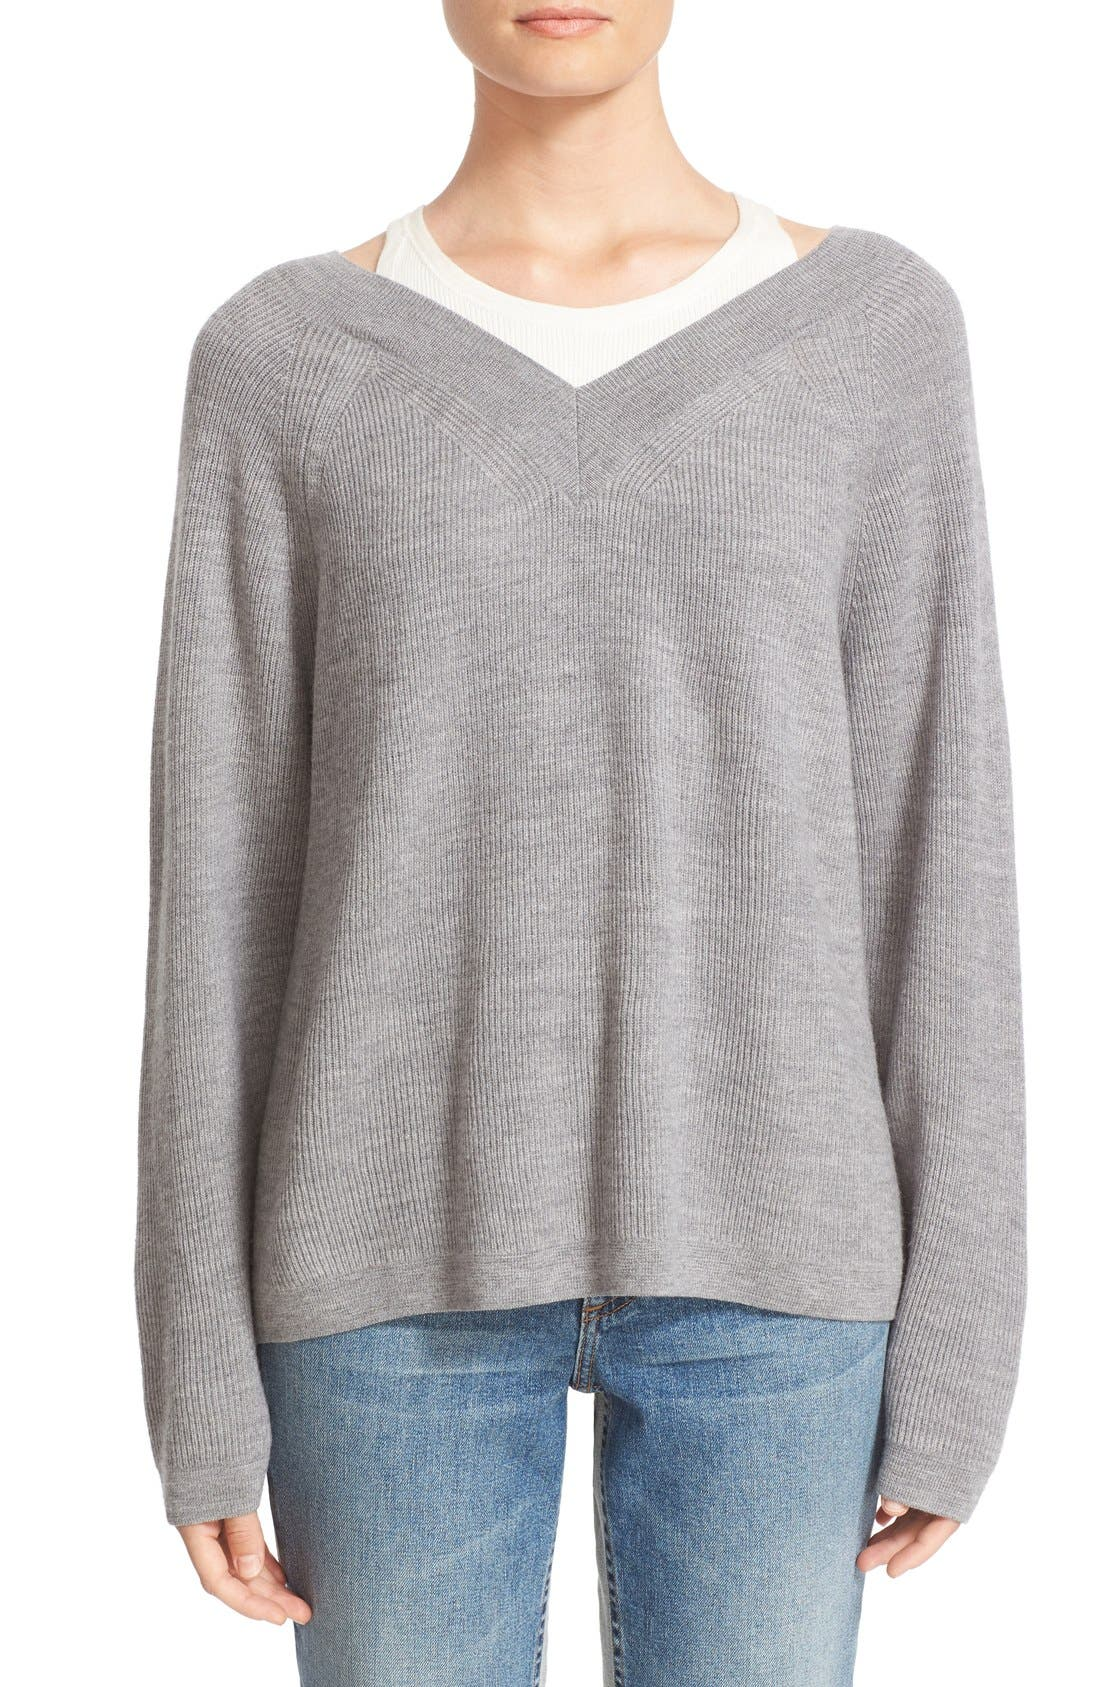 Main Image - T by Alexander Wang Layered Merino Wool Pullover